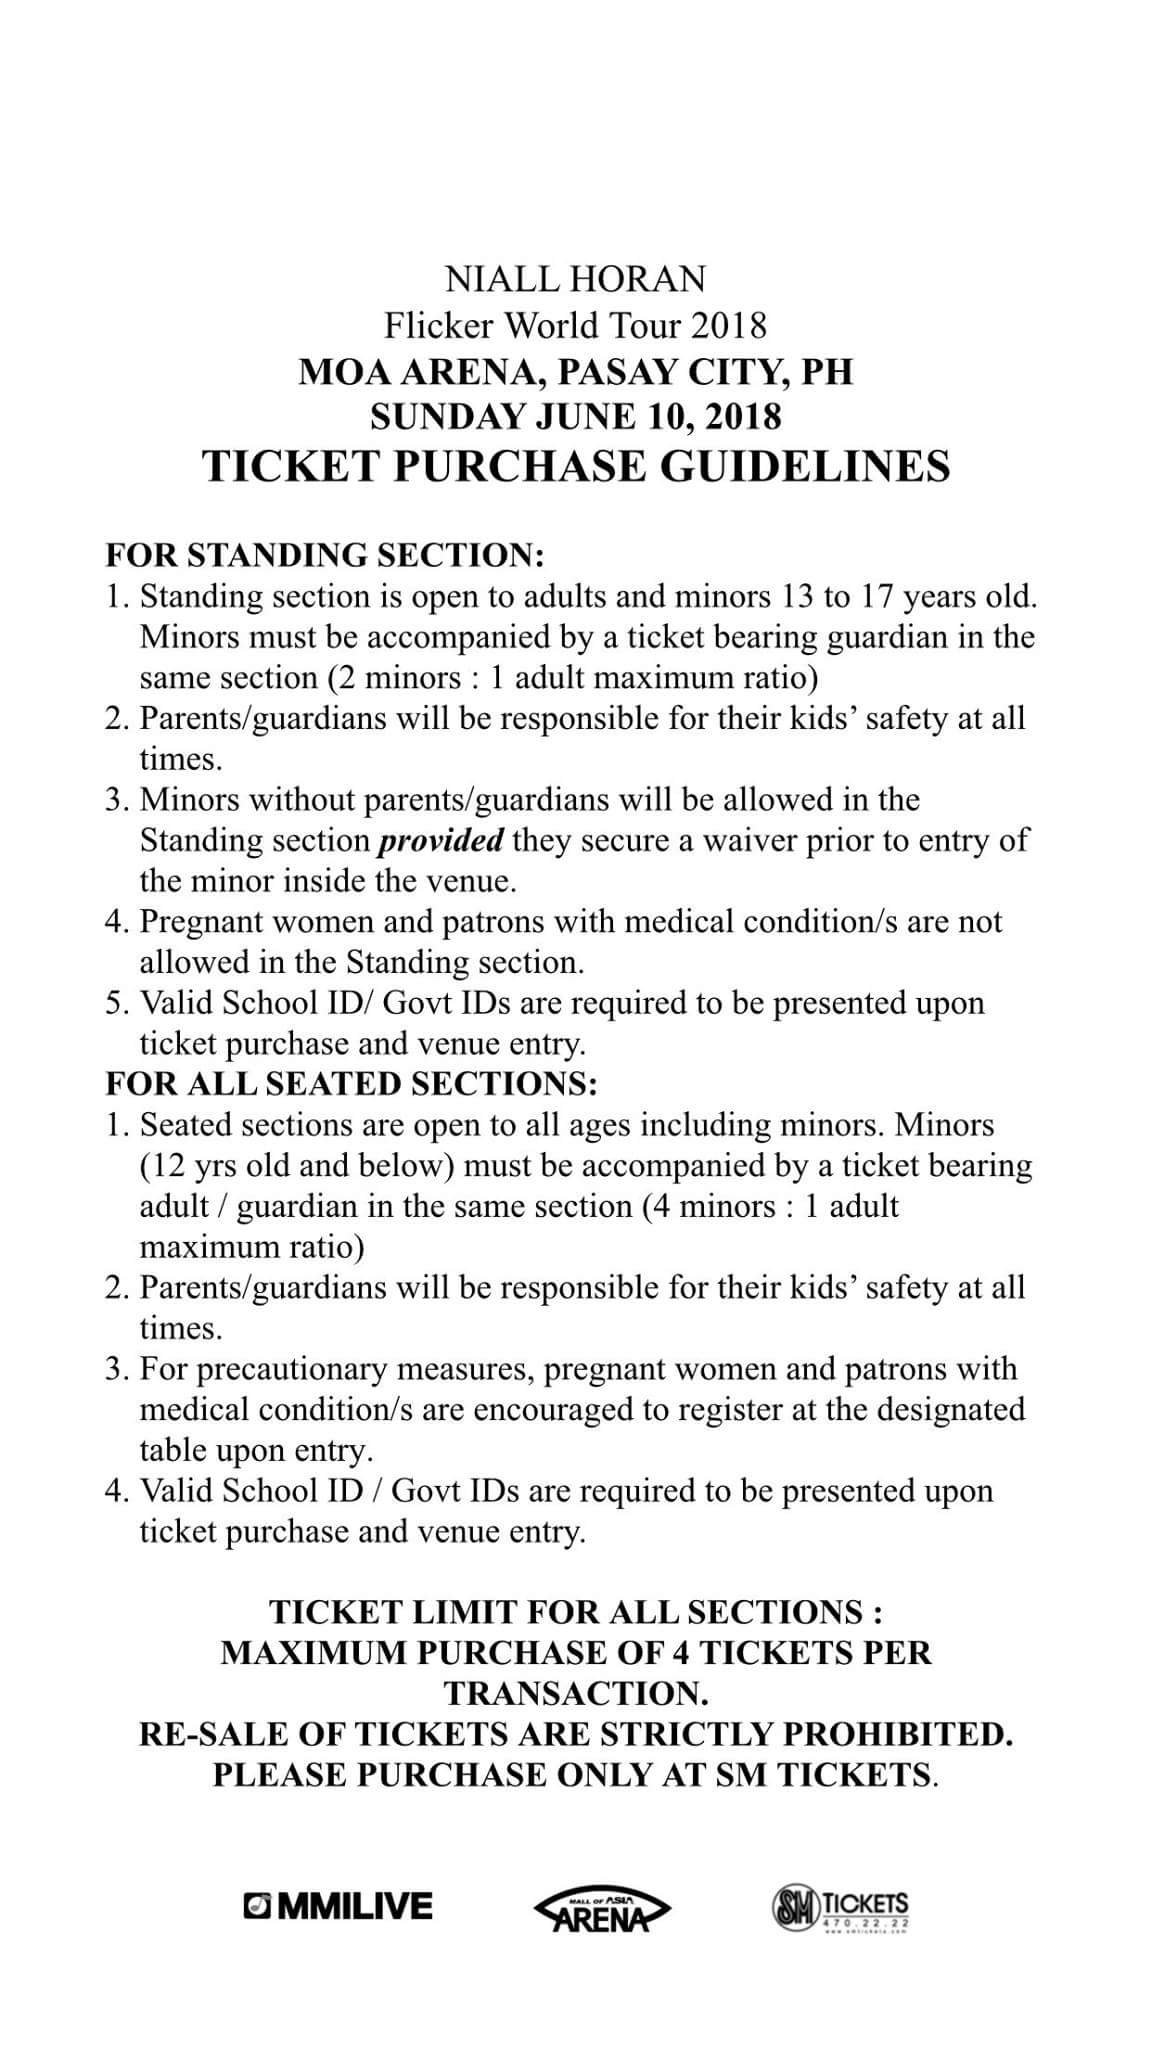 ddd1c9a5bda Tickets available at SM Ticket Outlets or online at smtickets.com. TICKETING  GUIDELINES